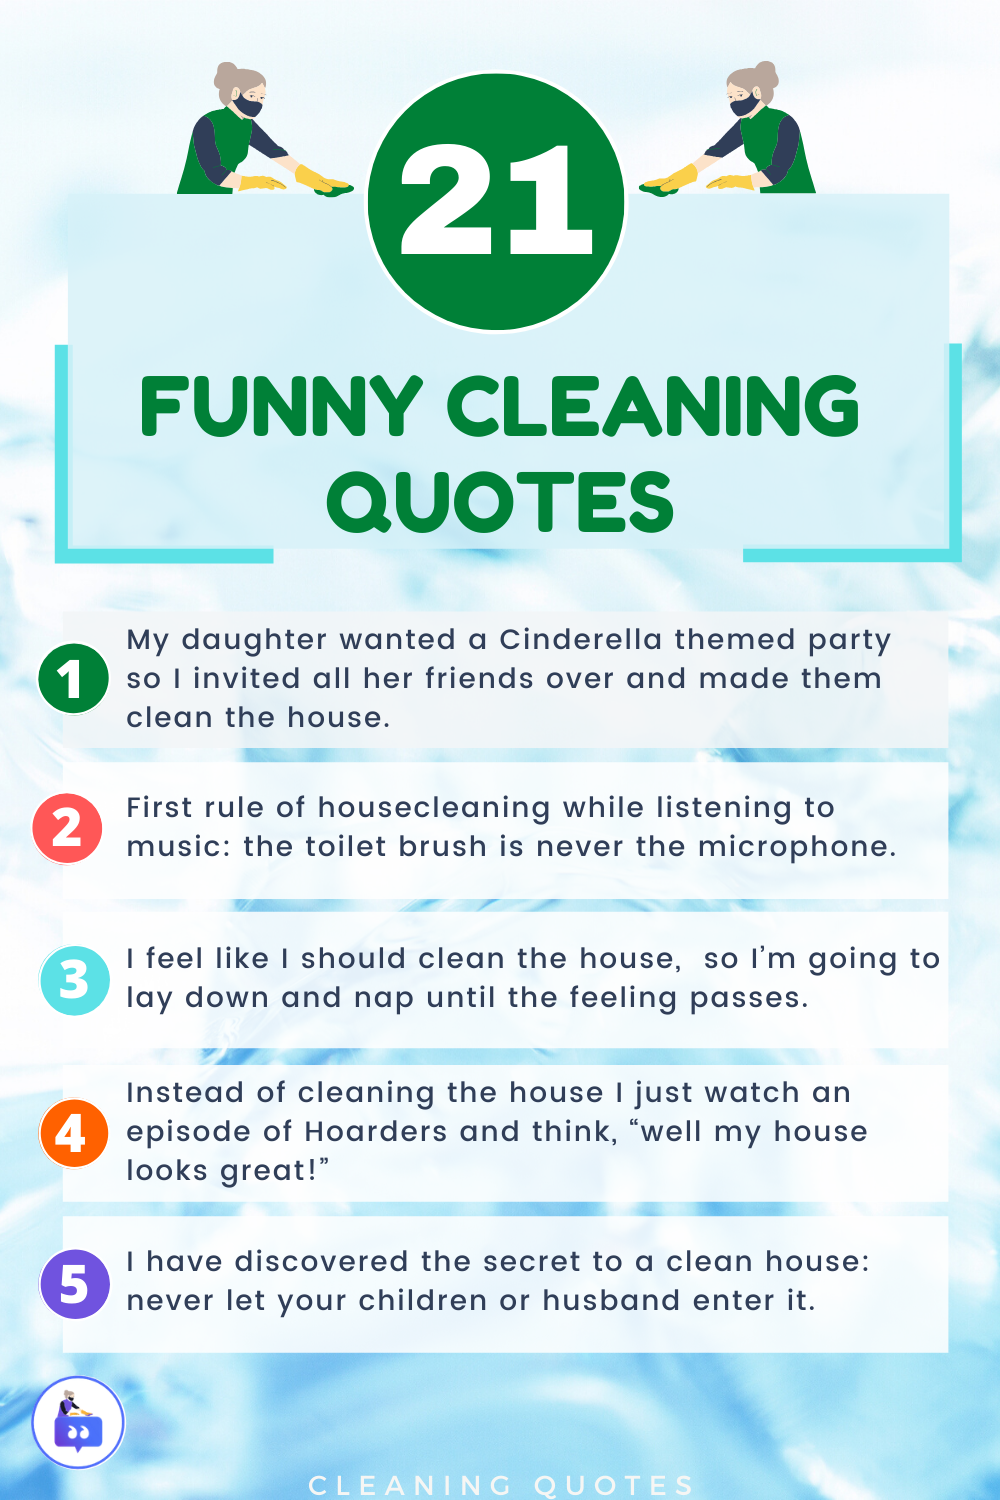 21 Funny Cleaning Quotes Cleaning Motivation Inspiration Cleaning Quotes Funny Cleaning Quotes Cleanliness Quotes